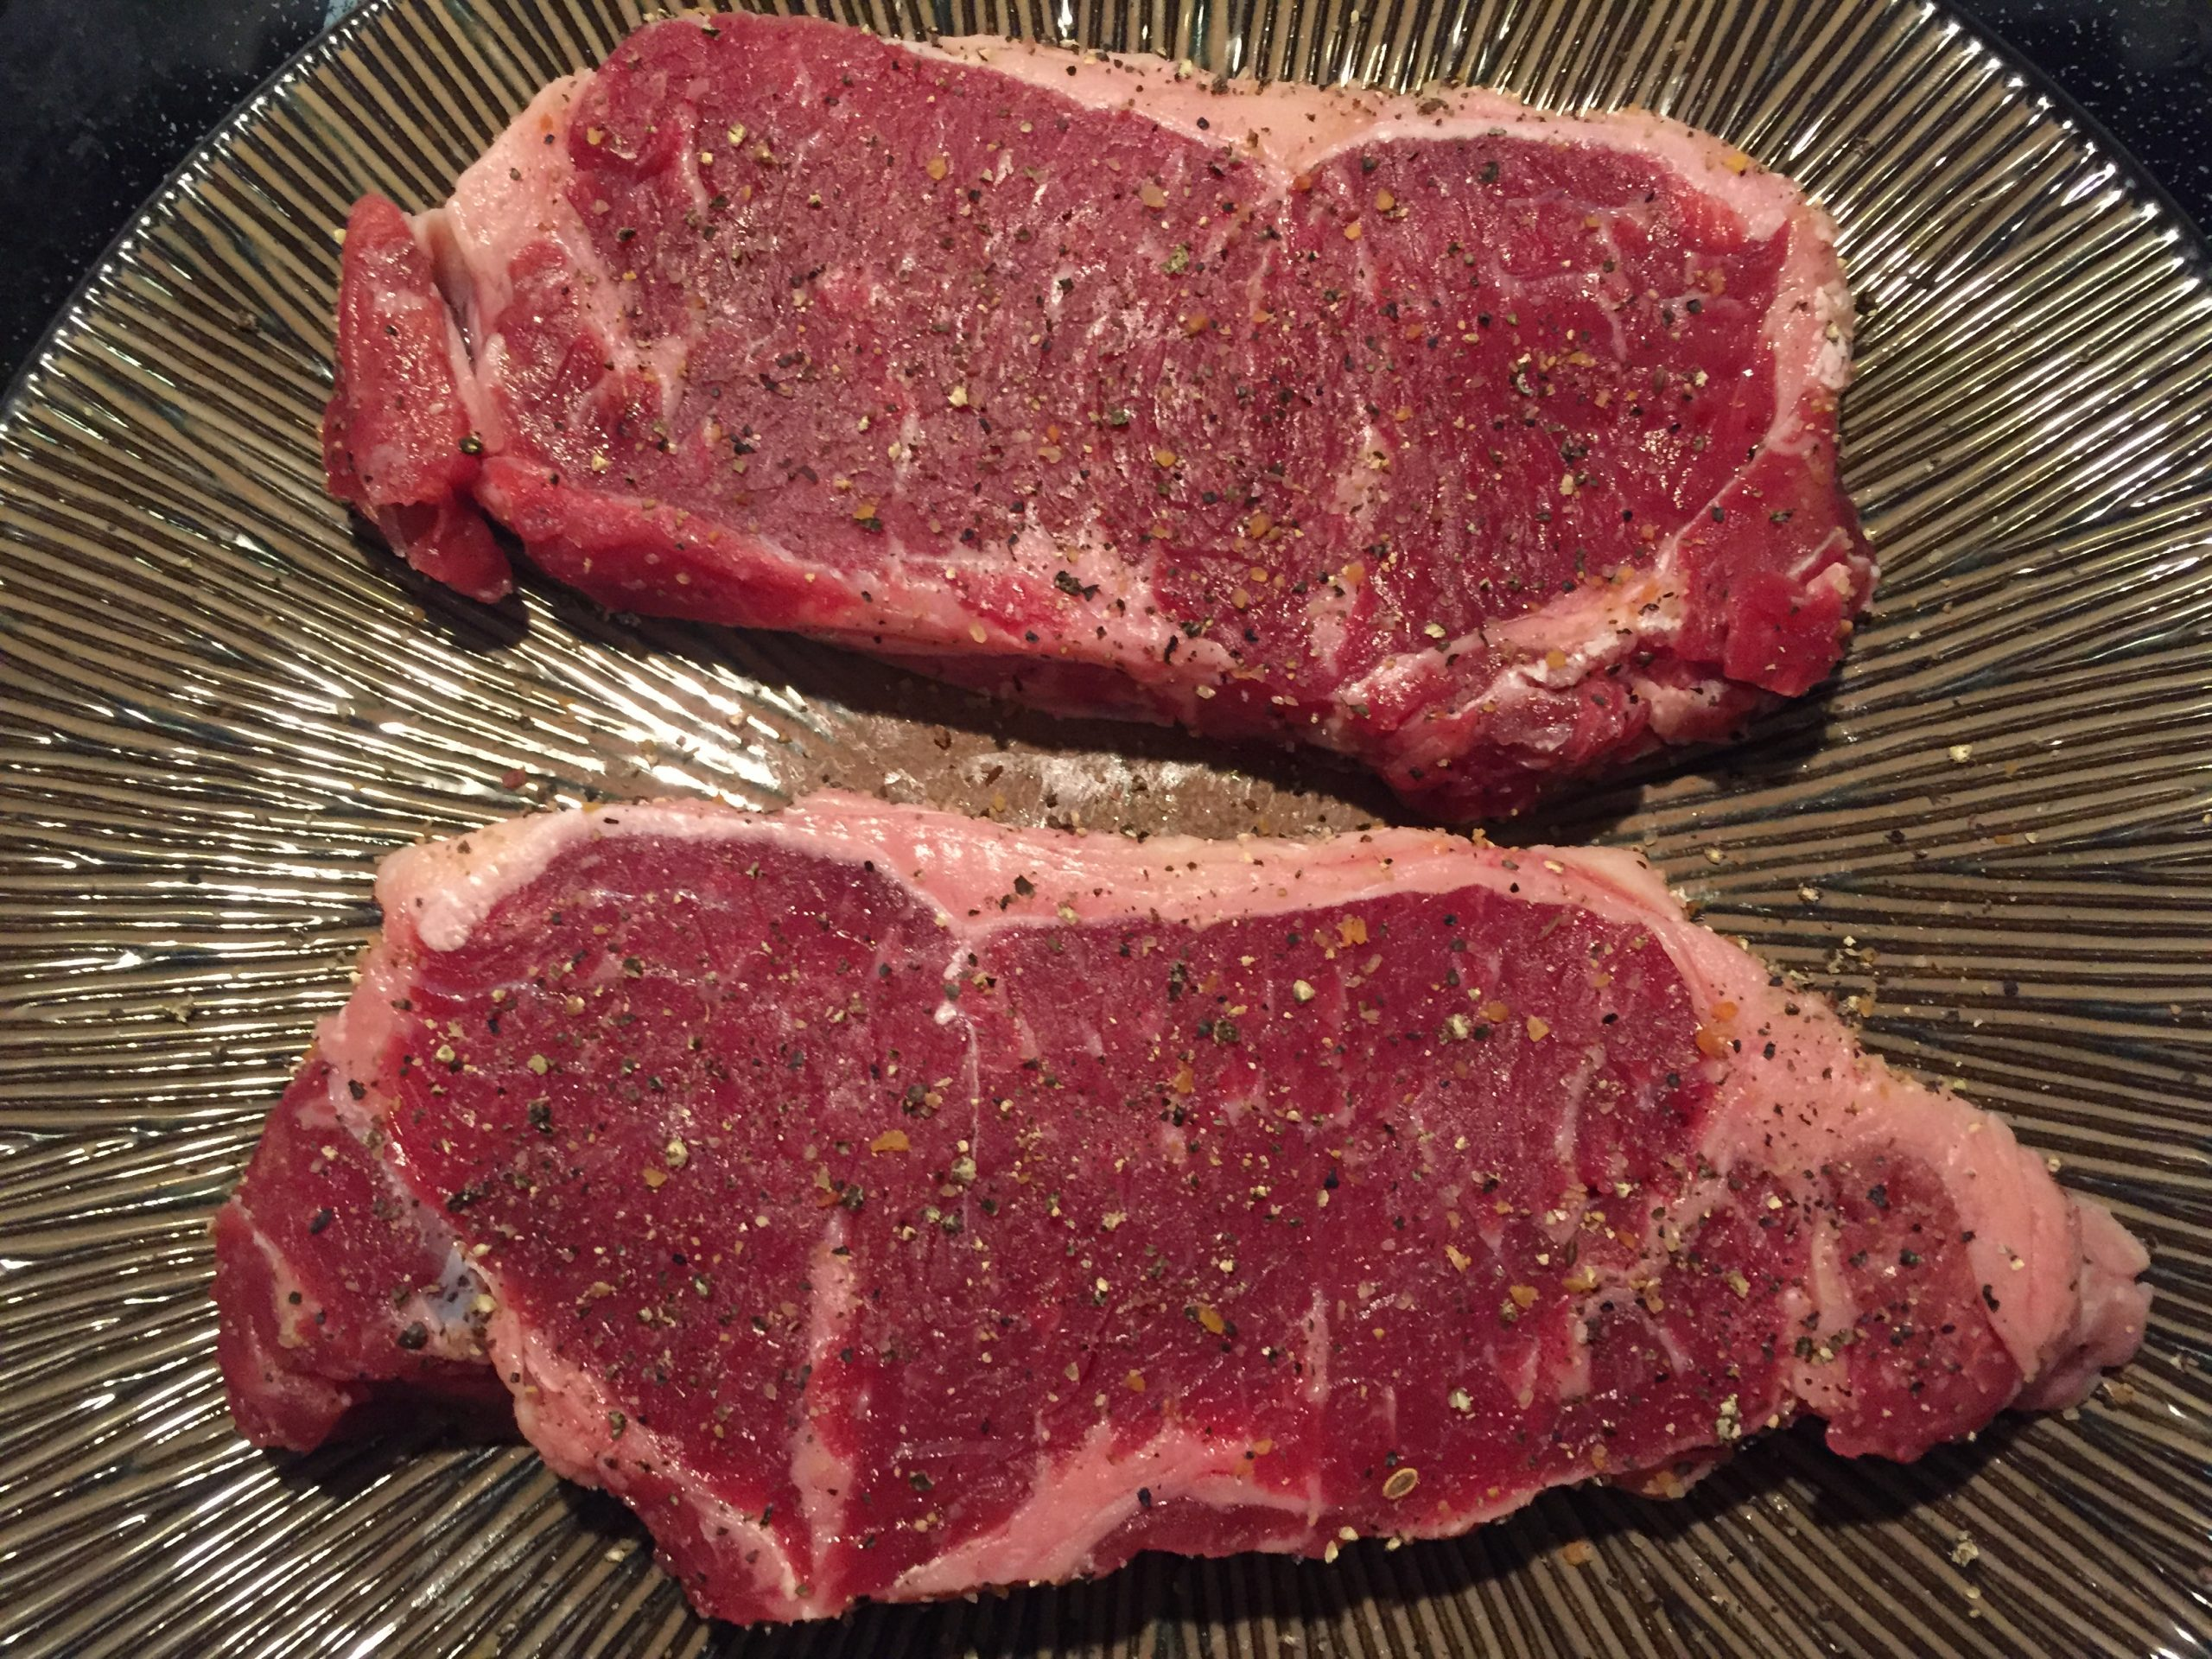 Salting Steaks Before Grilling, Seasoned With Pepper